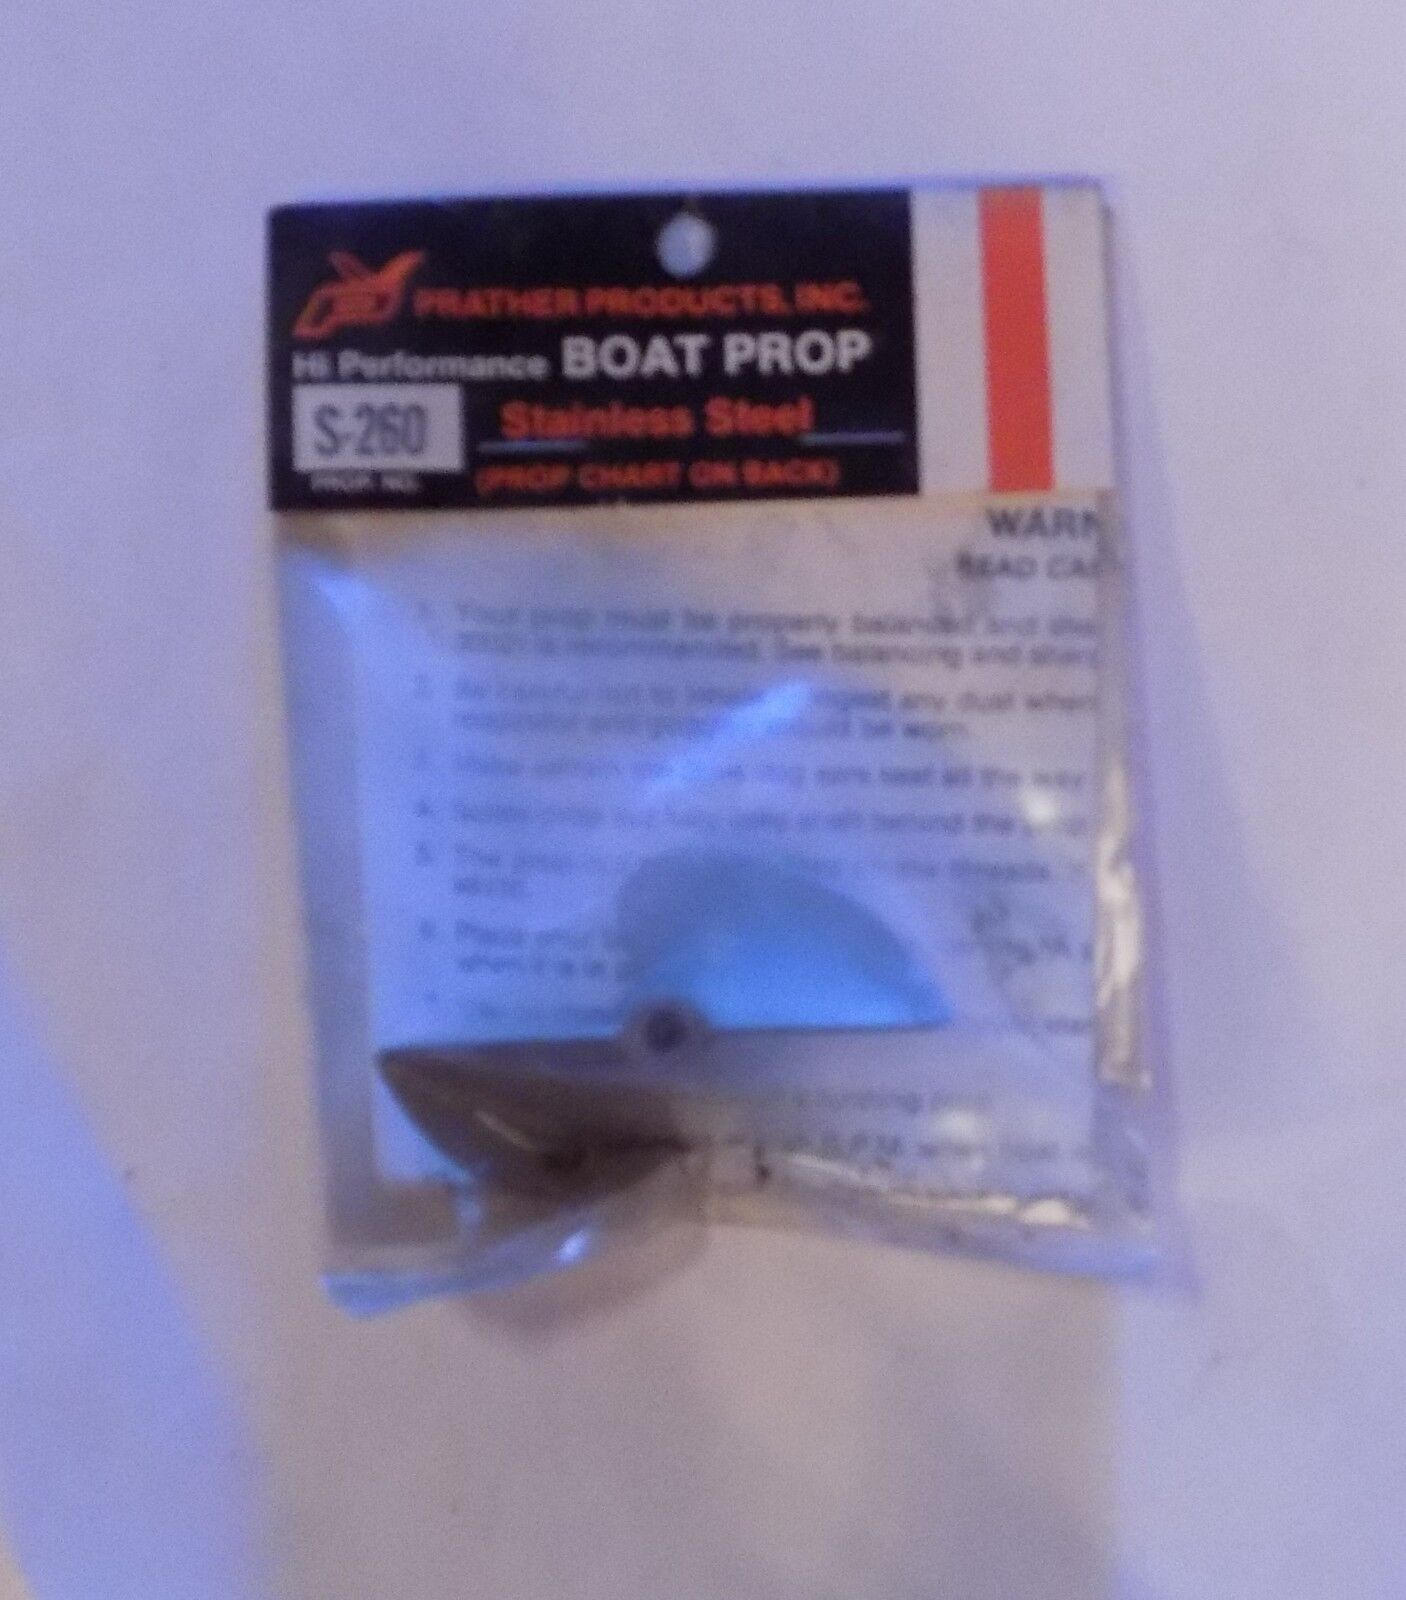 Prather Products S260 Boat Prop Stainless Steel